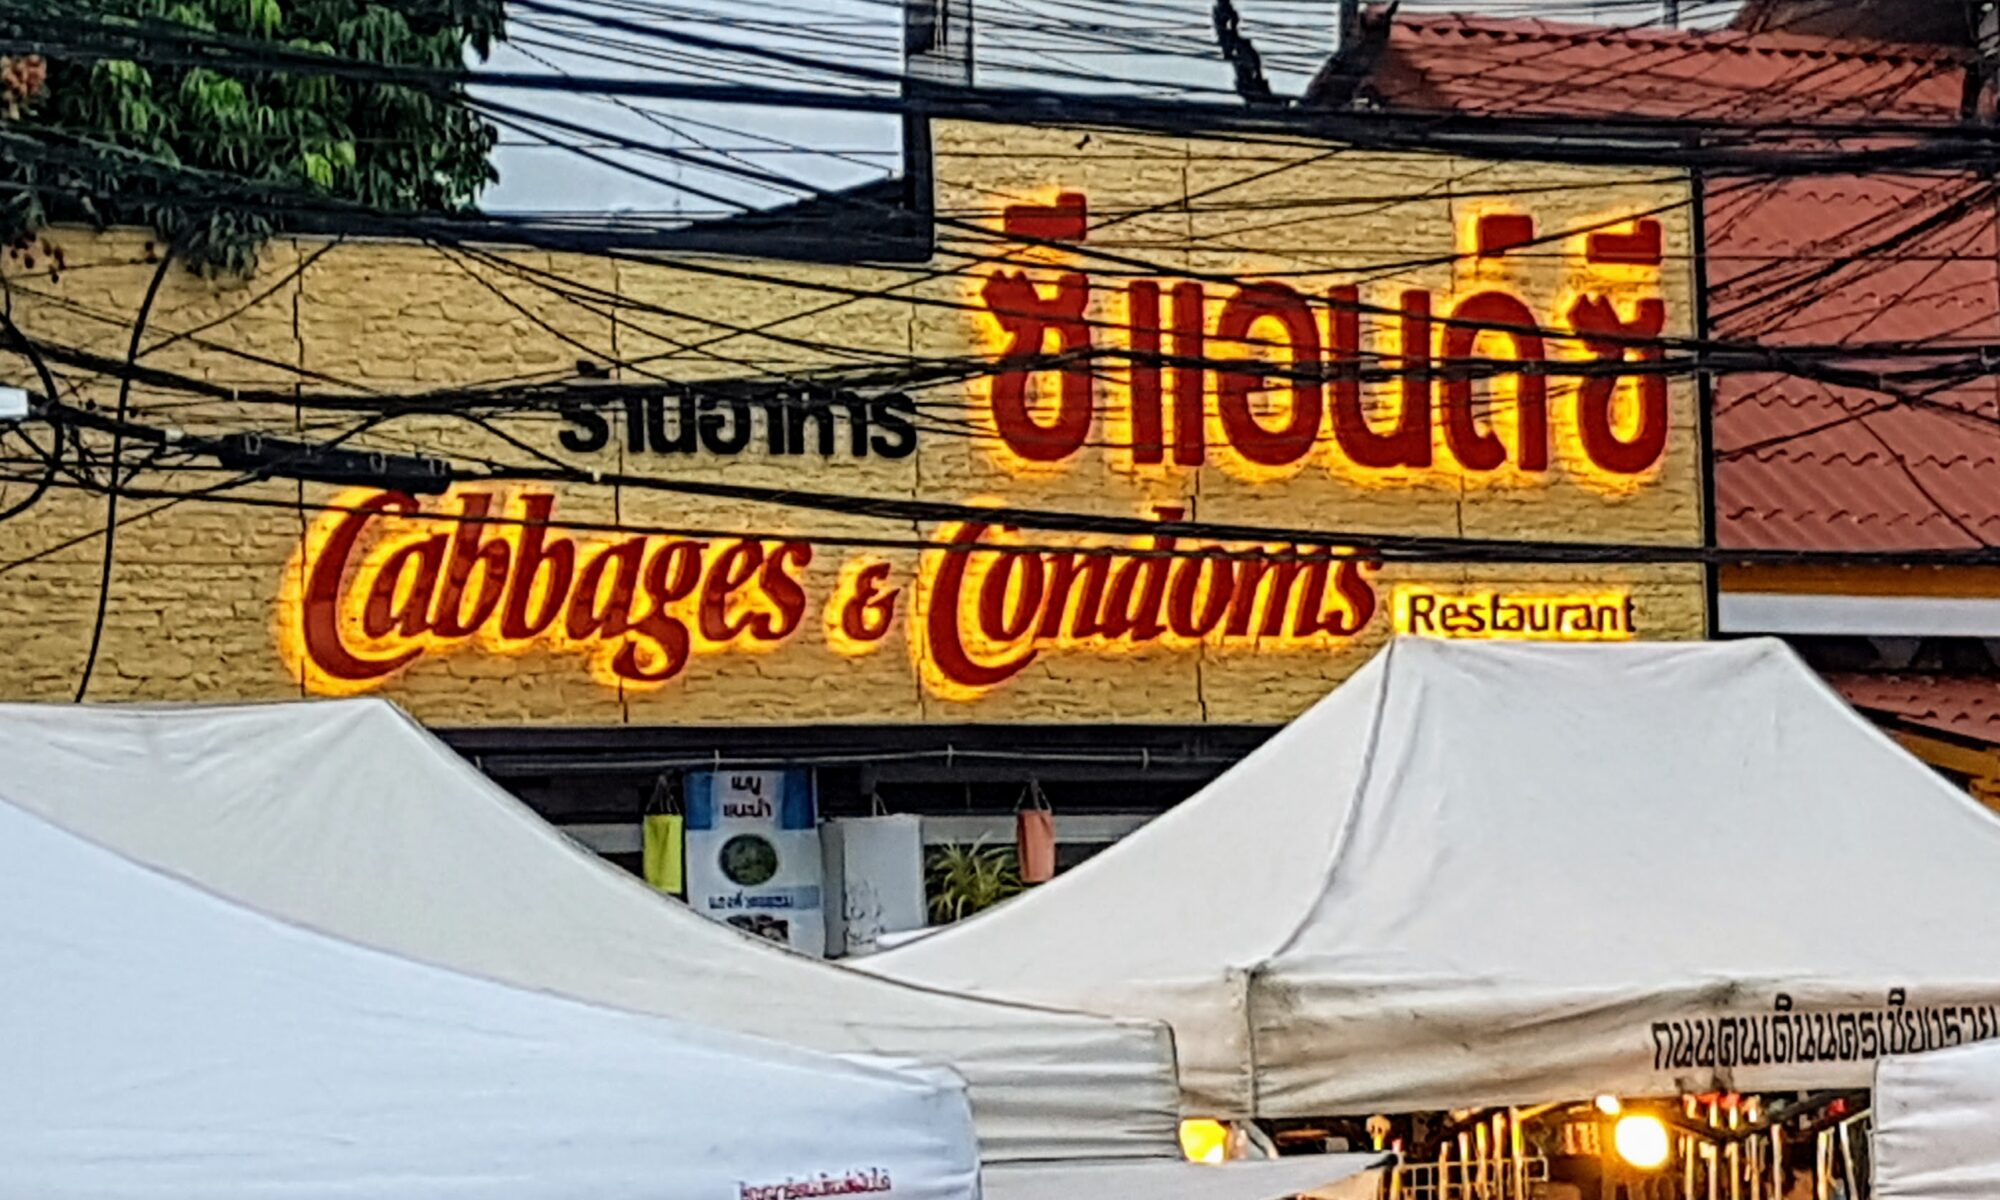 External image of 'Cabbages & Condoms Restaurant' - Chiang Mai, Thailand